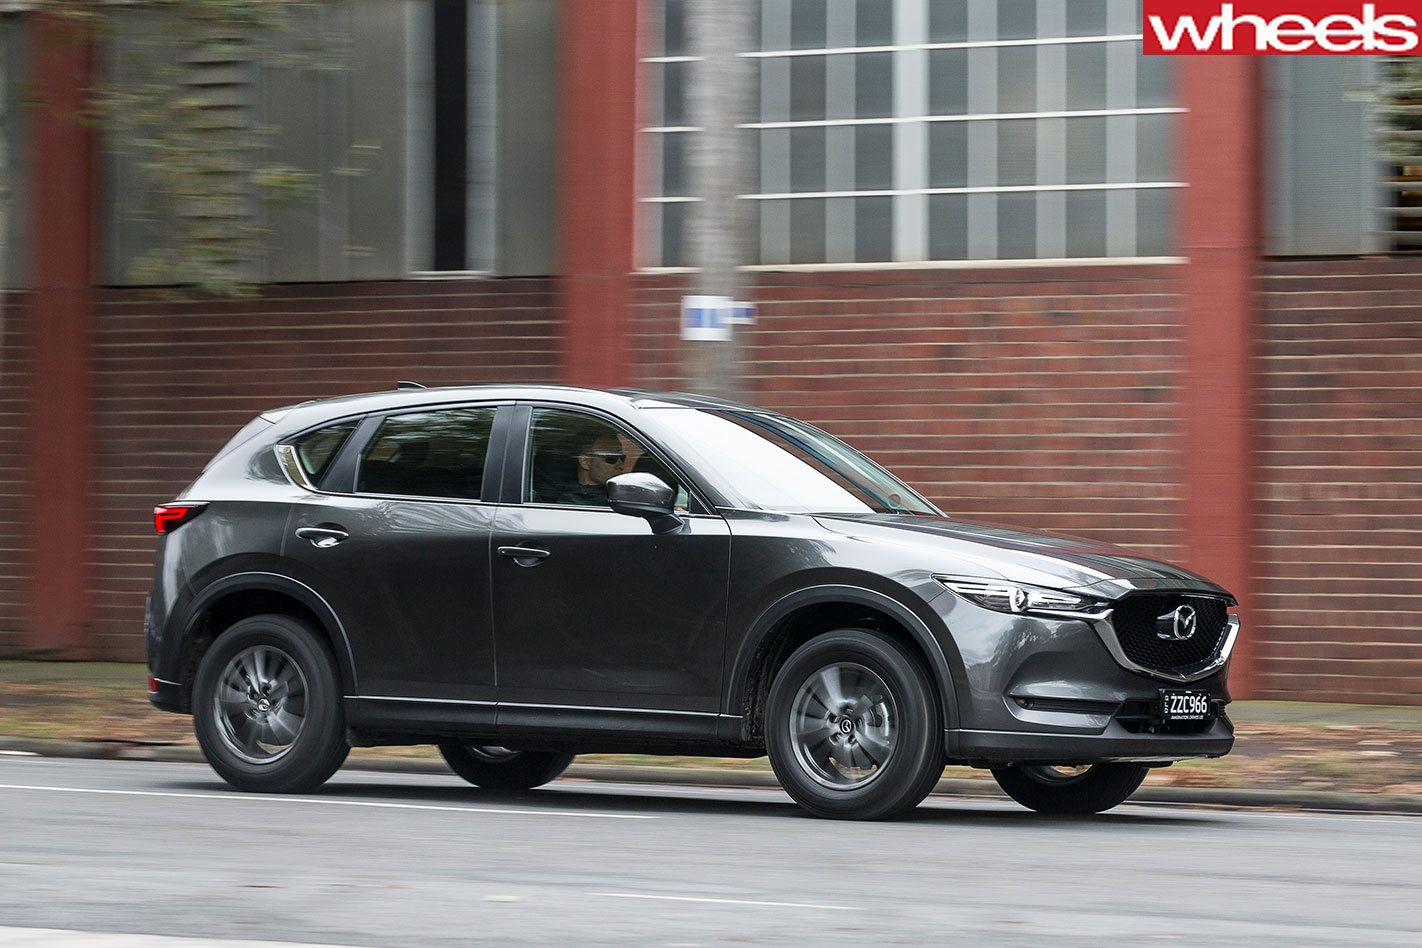 intl mazda touring price international prices suv grand specs aaevinh rx overview